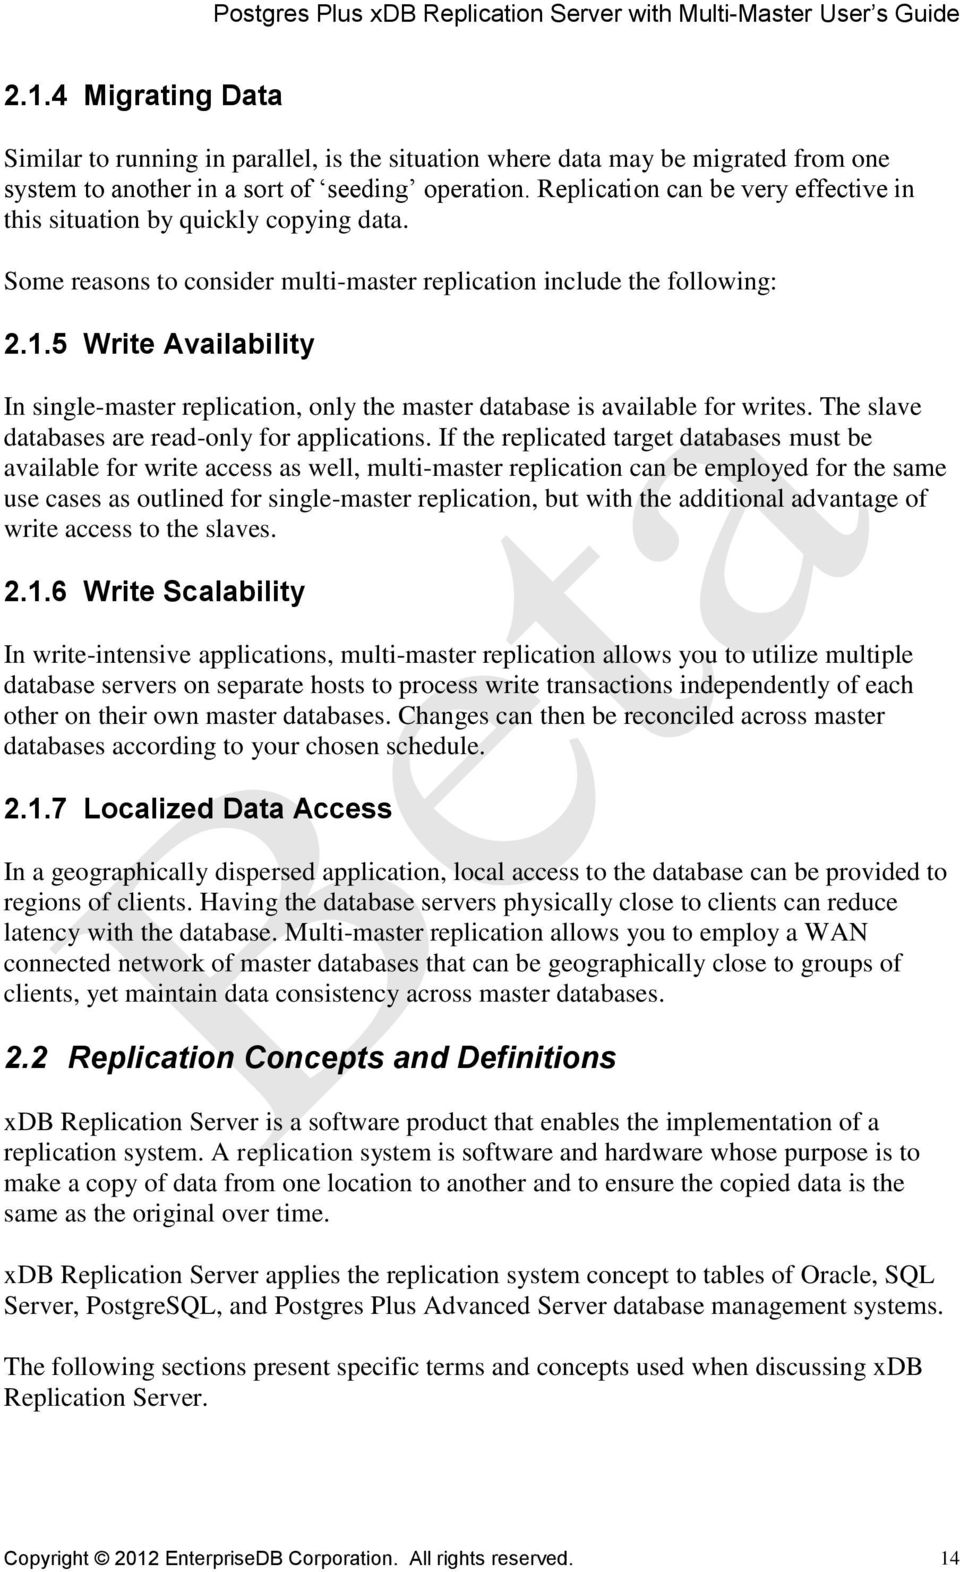 5 Write Availability In single-master replication, only the master database is available for writes. The slave databases are read-only for applications.